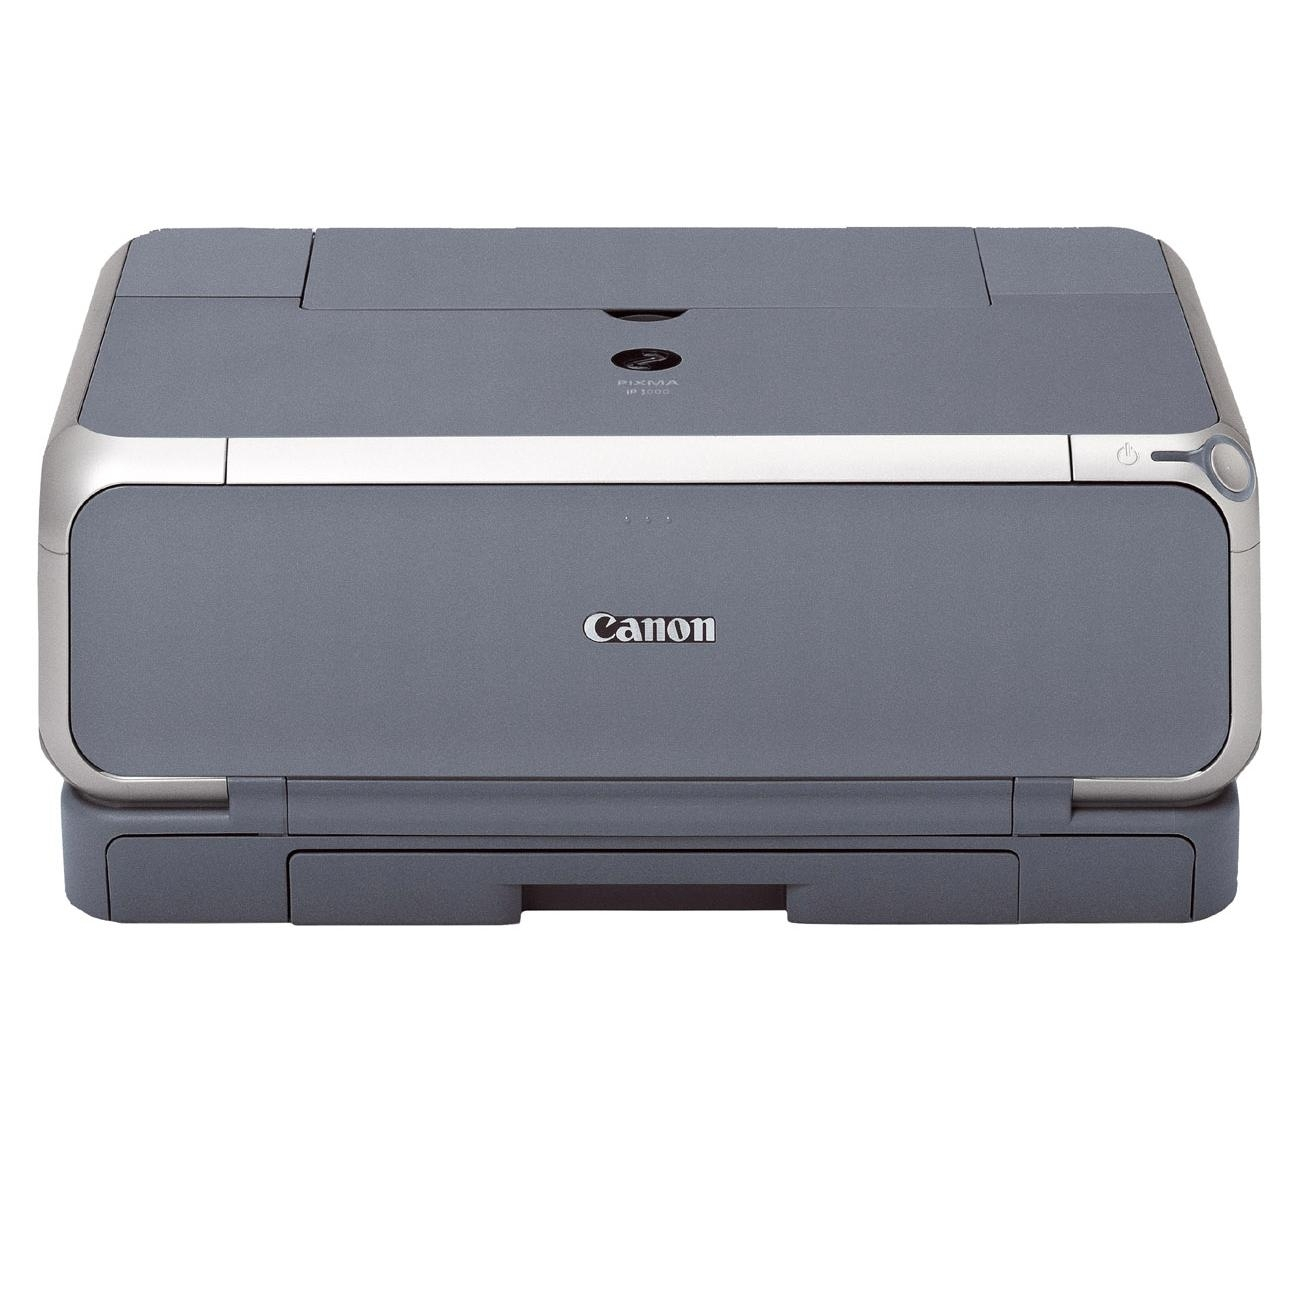 Canon Pixma Ip3000 Drivers